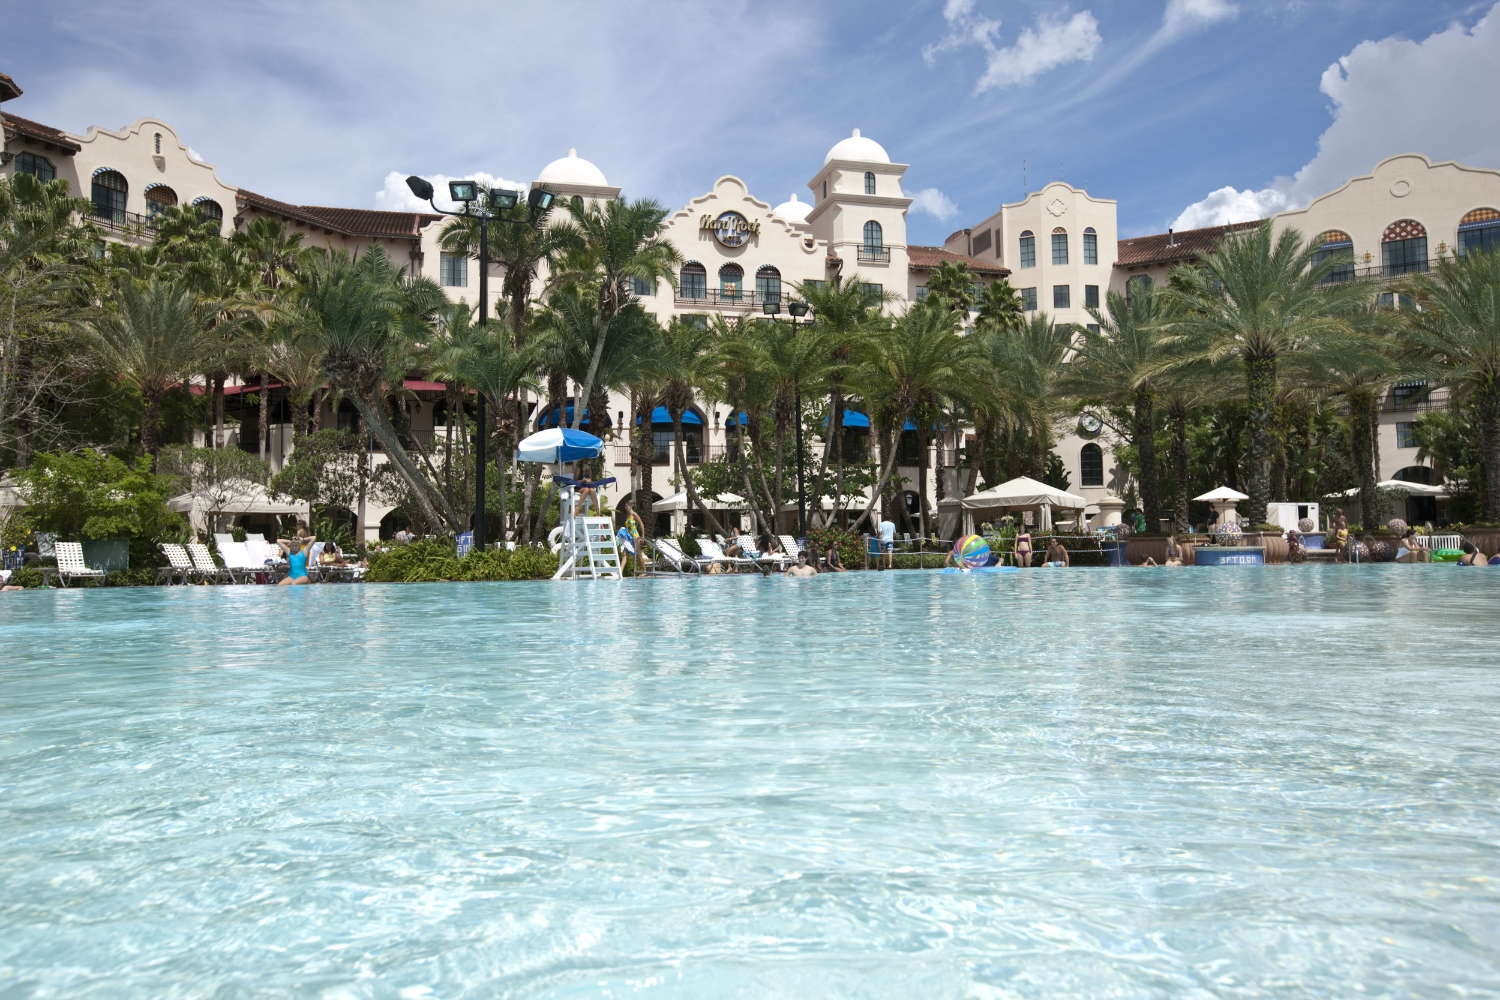 Hard Rock Hotel Pool